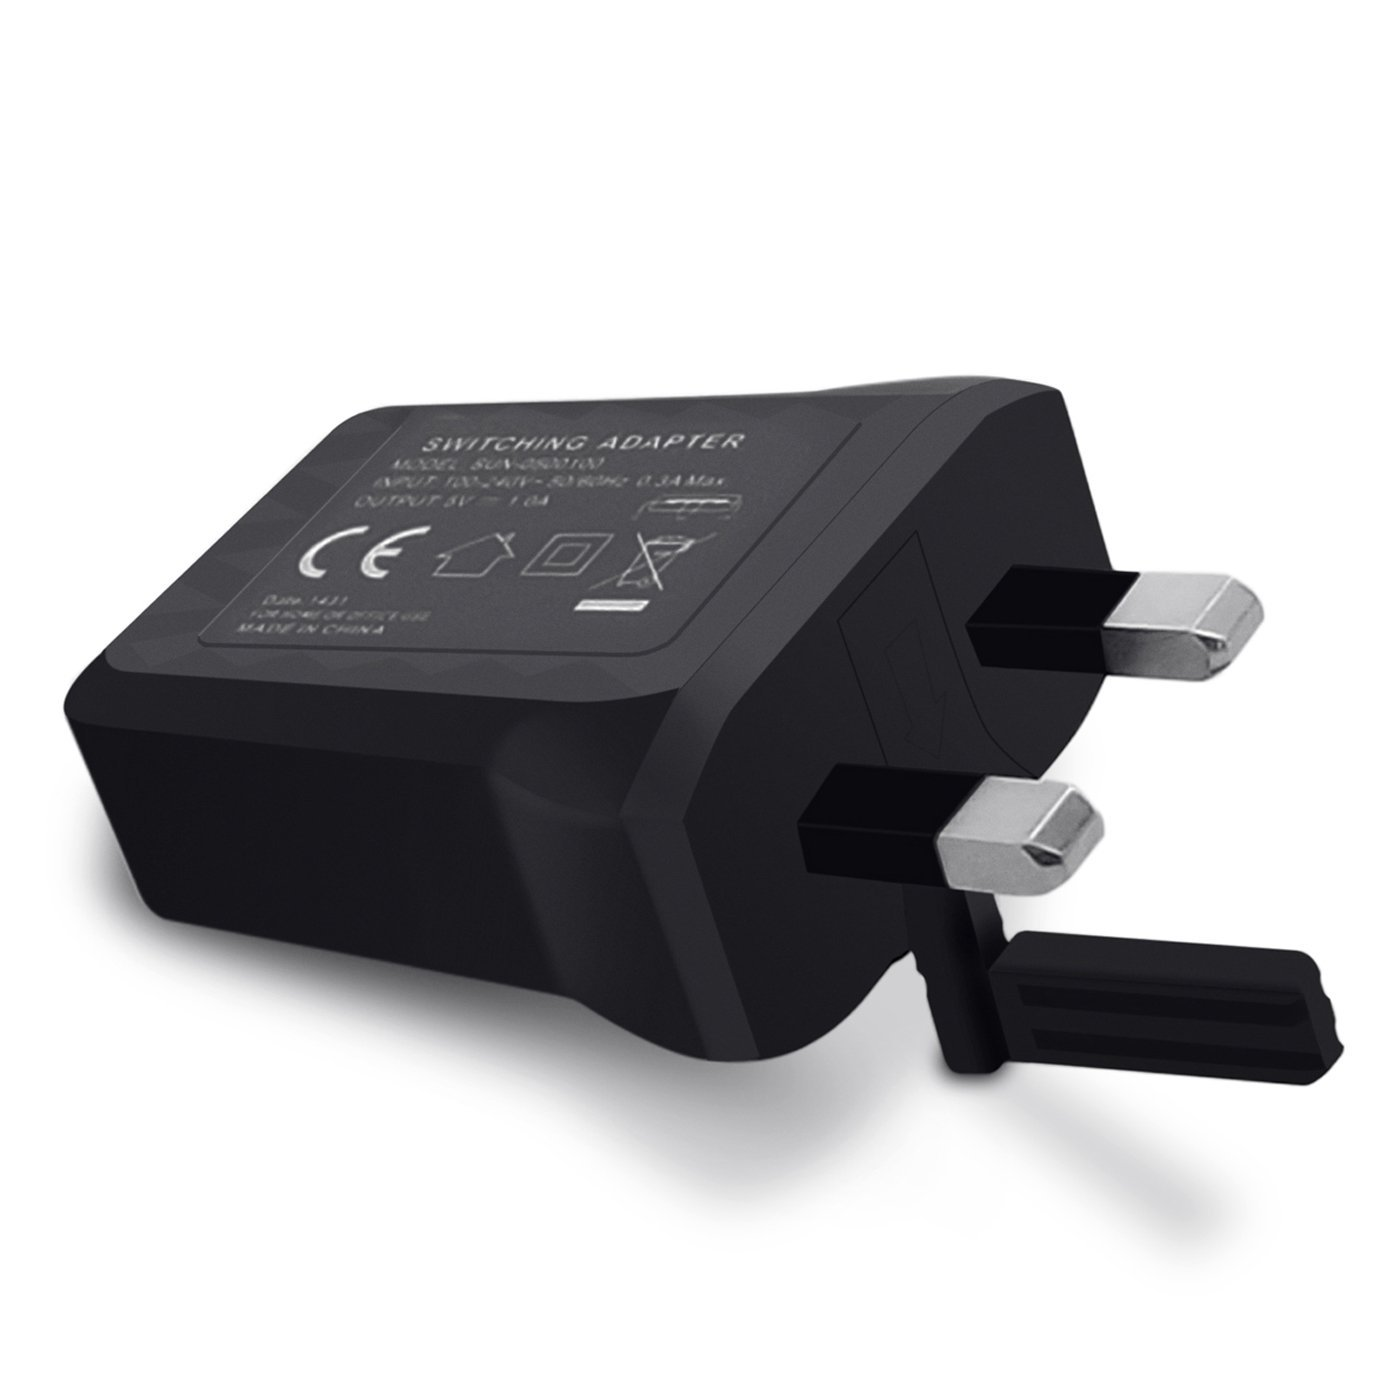 Xiaomi Usb Charger 3 Pin Adapter Black Bulk Megatel Power Products Accessories Plug Wiring Te